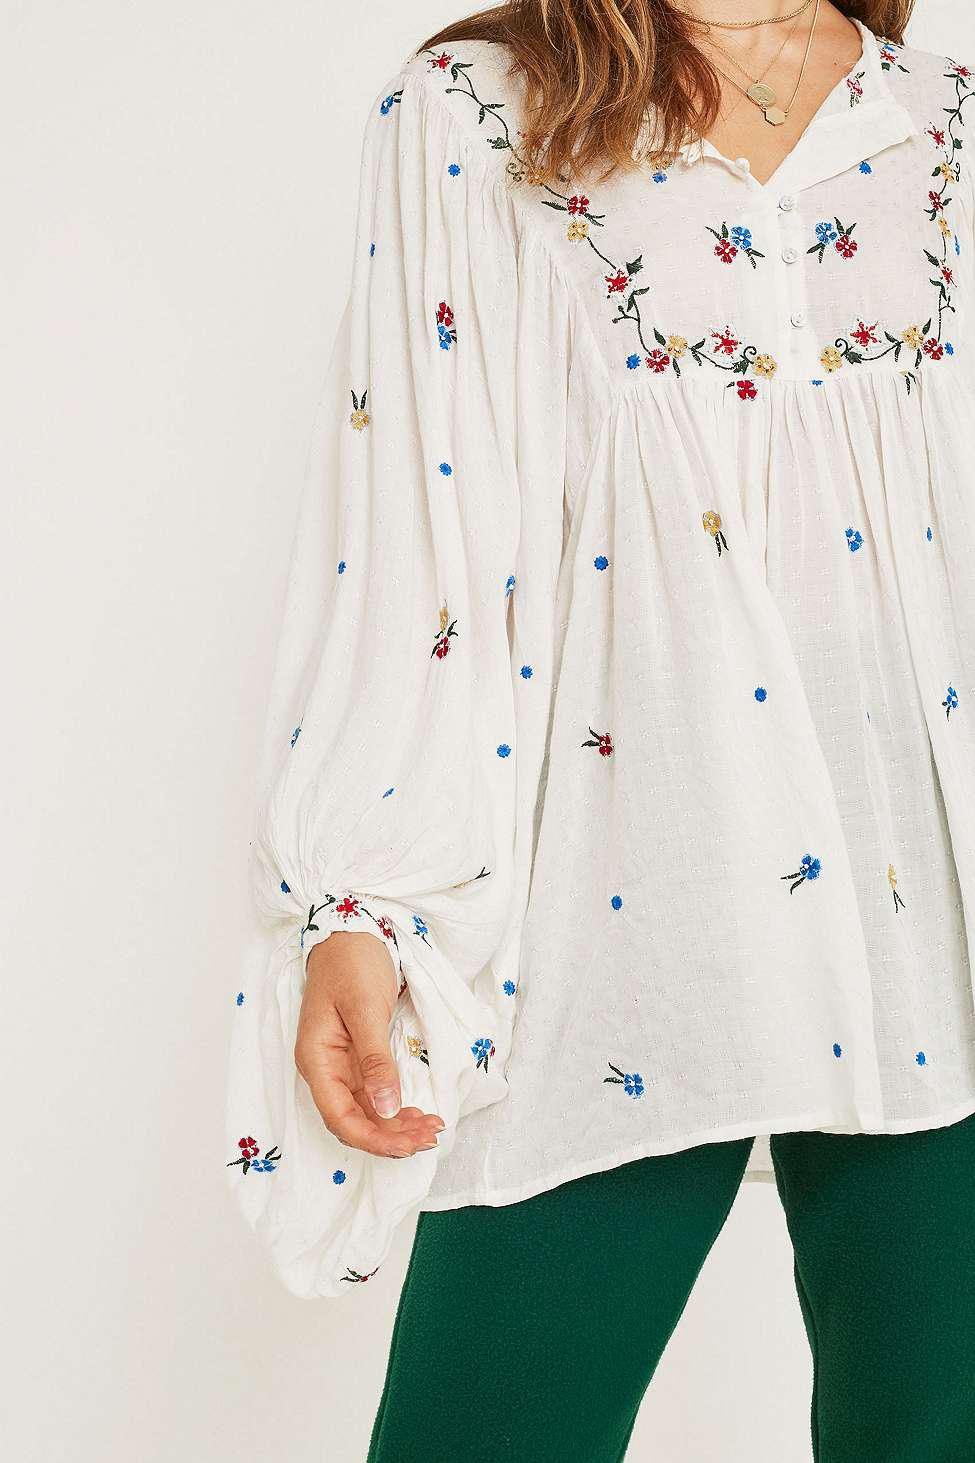 ea4c9474366 Free People Kiss From A Rose Embroidered Blouse - Womens Xs in ...